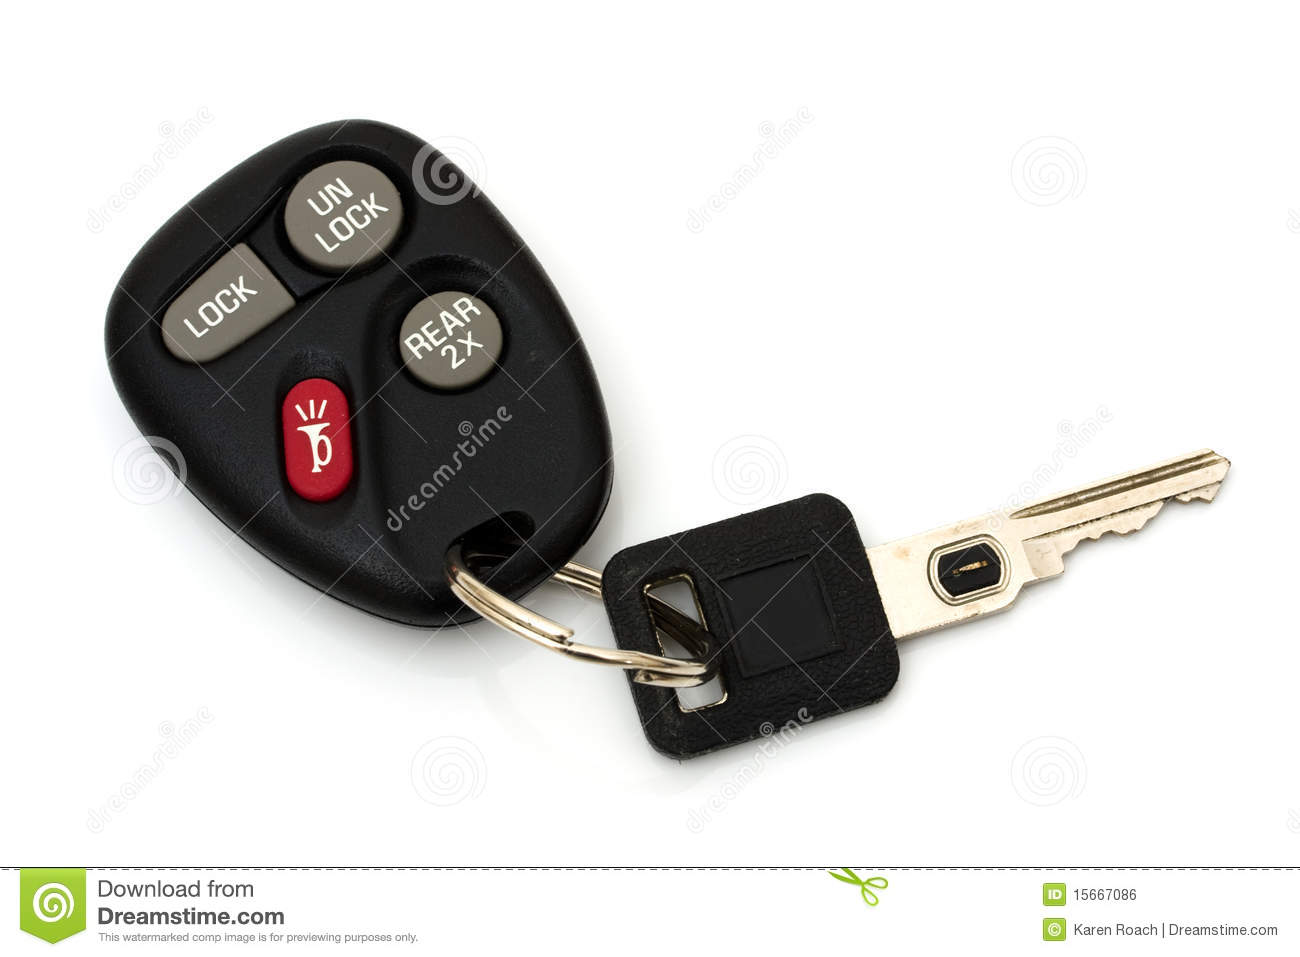 set of car keys royalty free stock image image 15667086. Black Bedroom Furniture Sets. Home Design Ideas